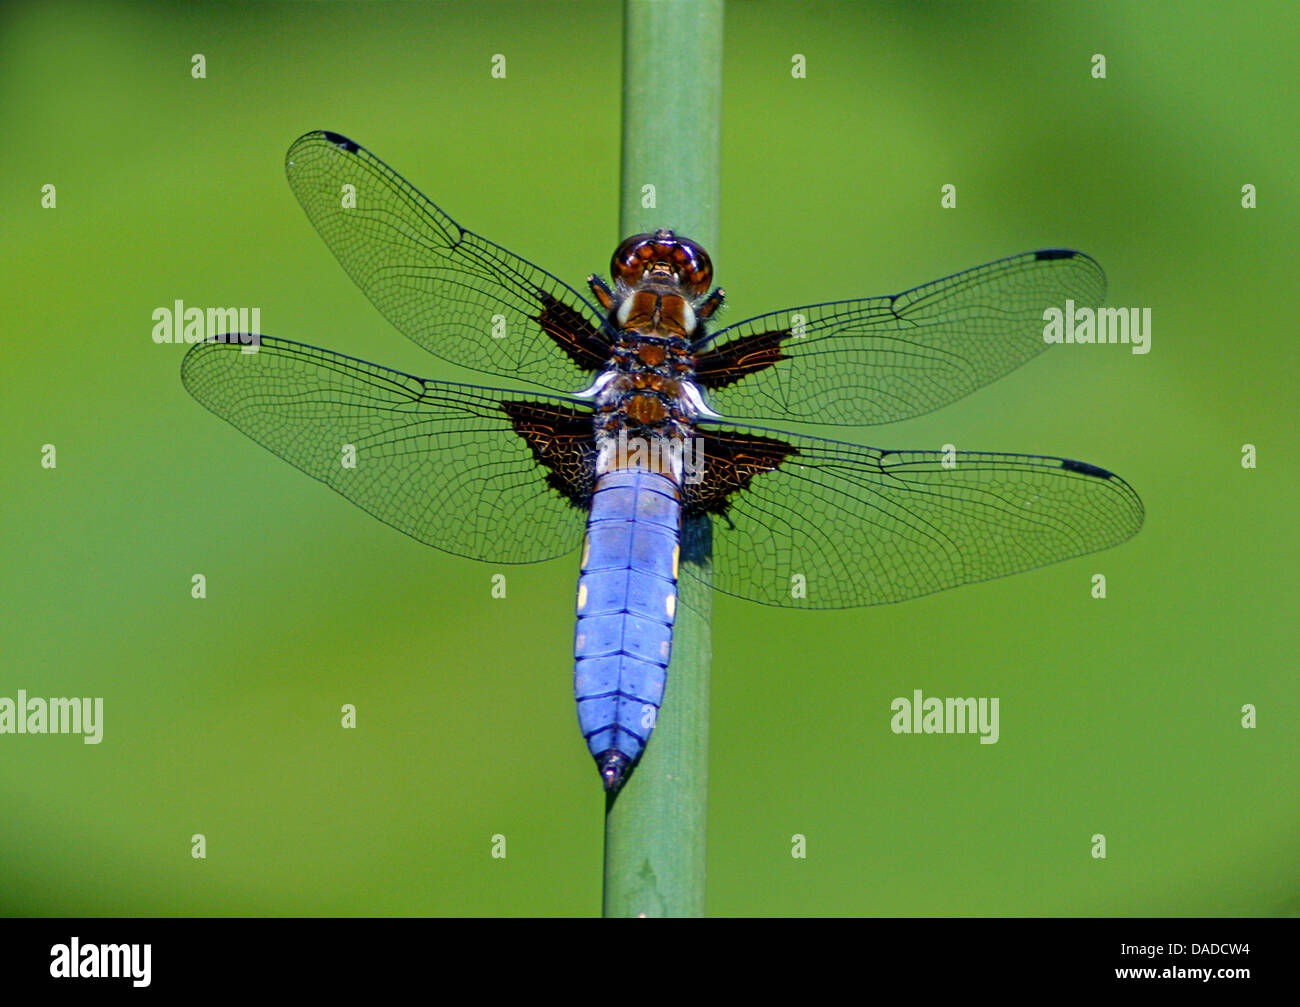 Broad-bodied libellula, Broad-bodied chaser (Libellula depressa), male sitting at a sprout, Germany - Stock Image